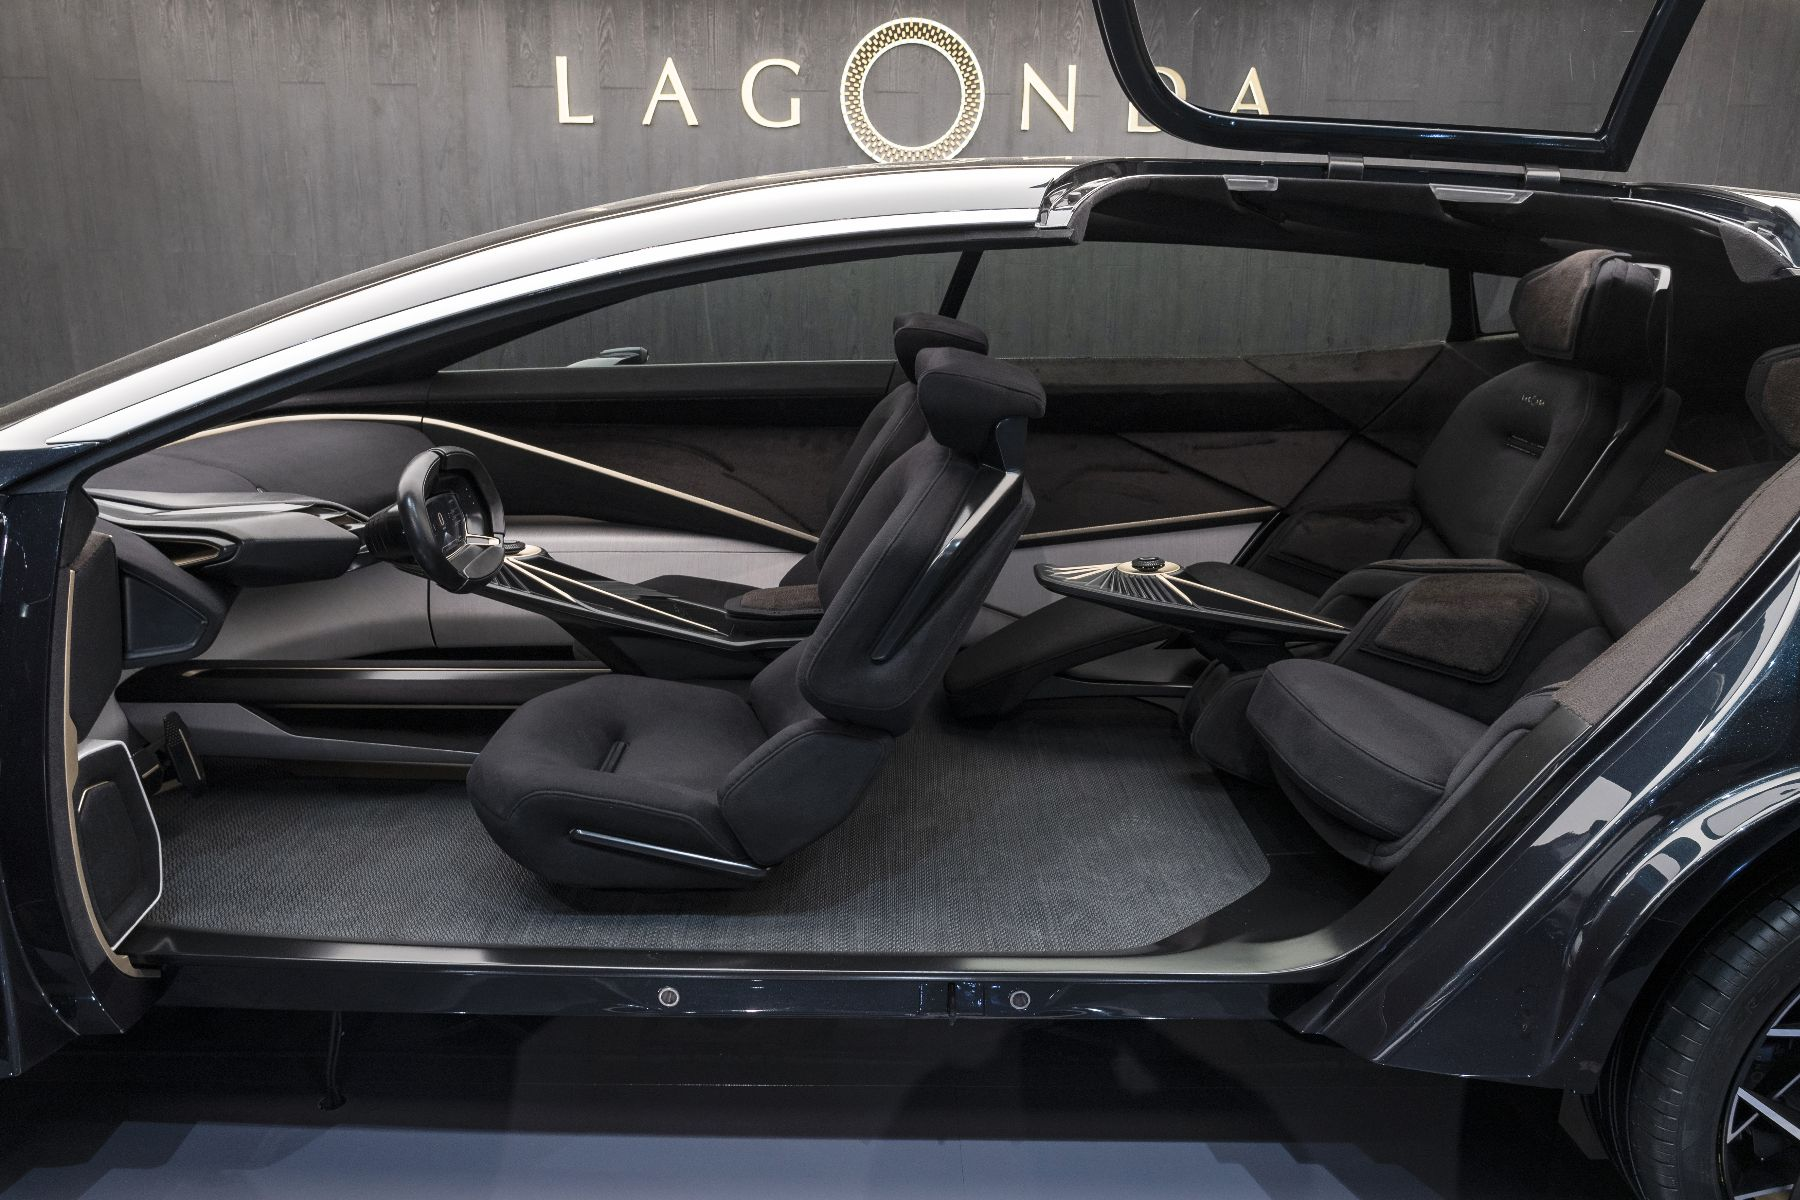 Aston Martin Lagonda 2020 All Terrain Inside View Full Inside View From Outside Sidewide Wendy Peterson